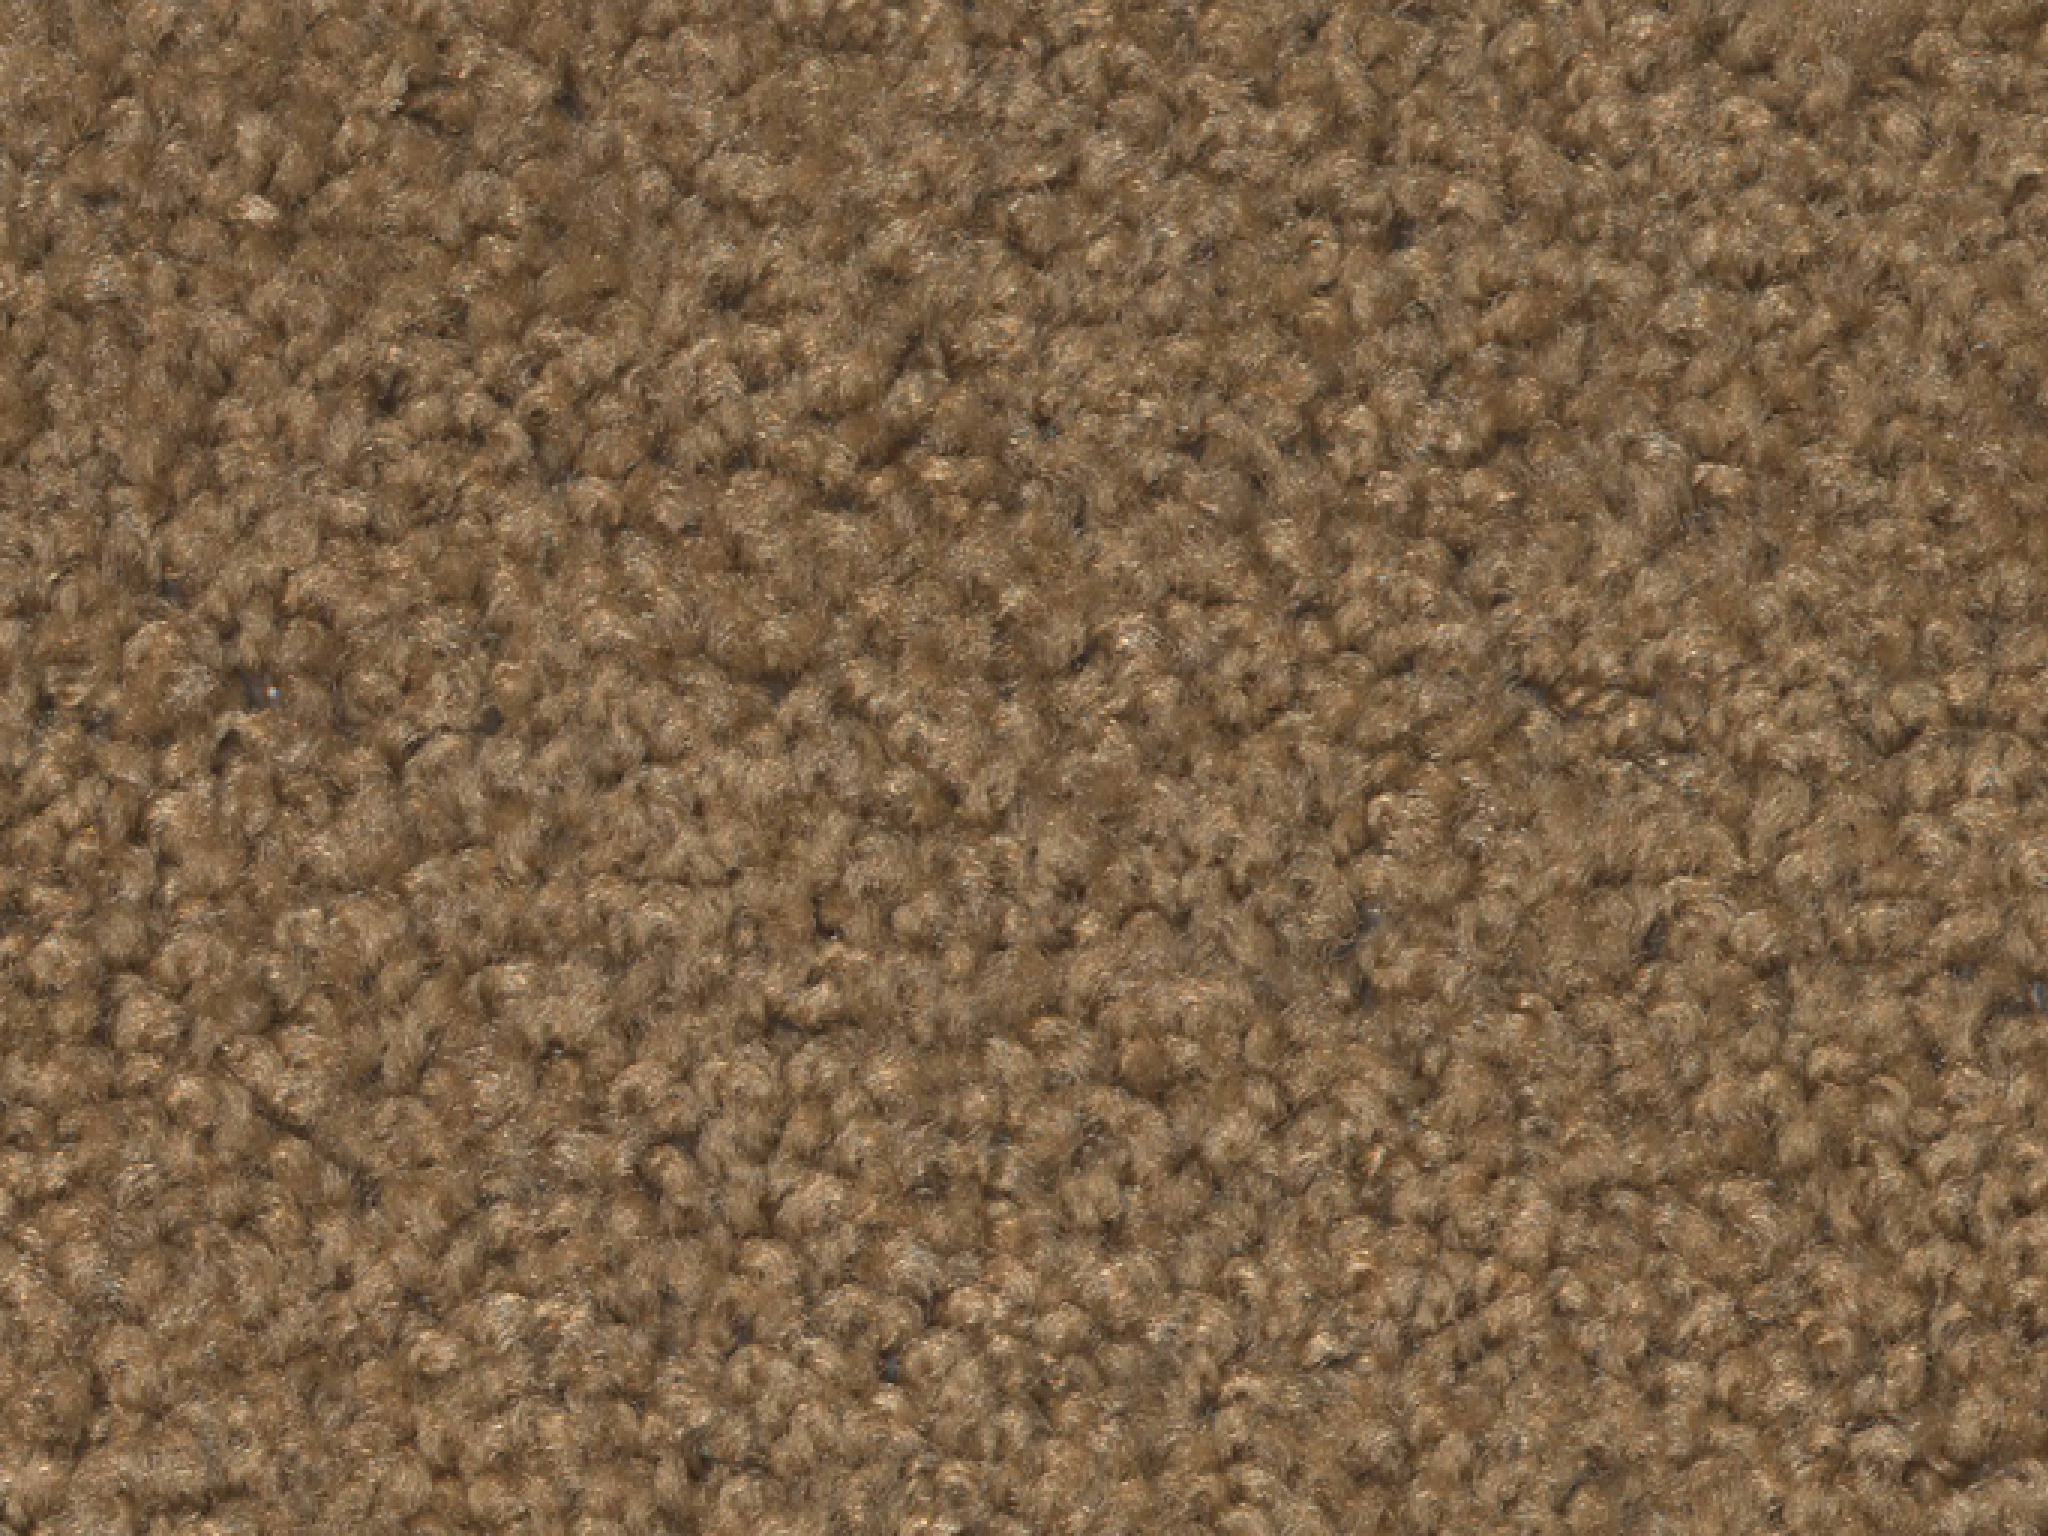 MAY_Decor_Carpet_Suede